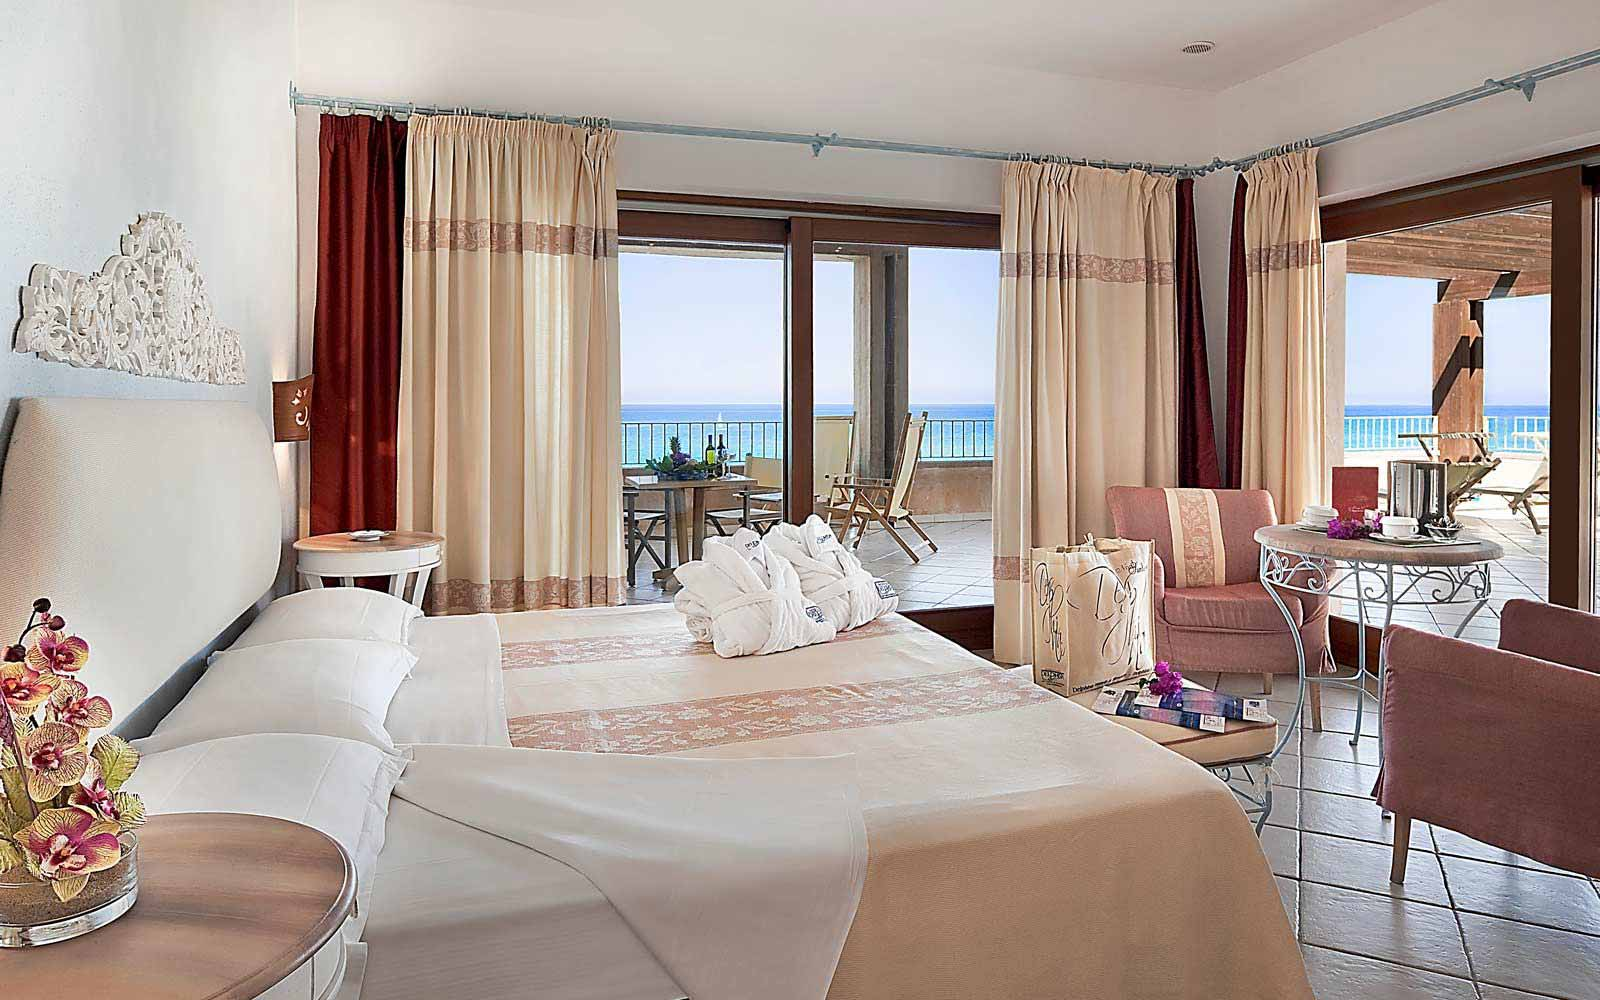 Royal room with sea view at Hotel Duna Bianca